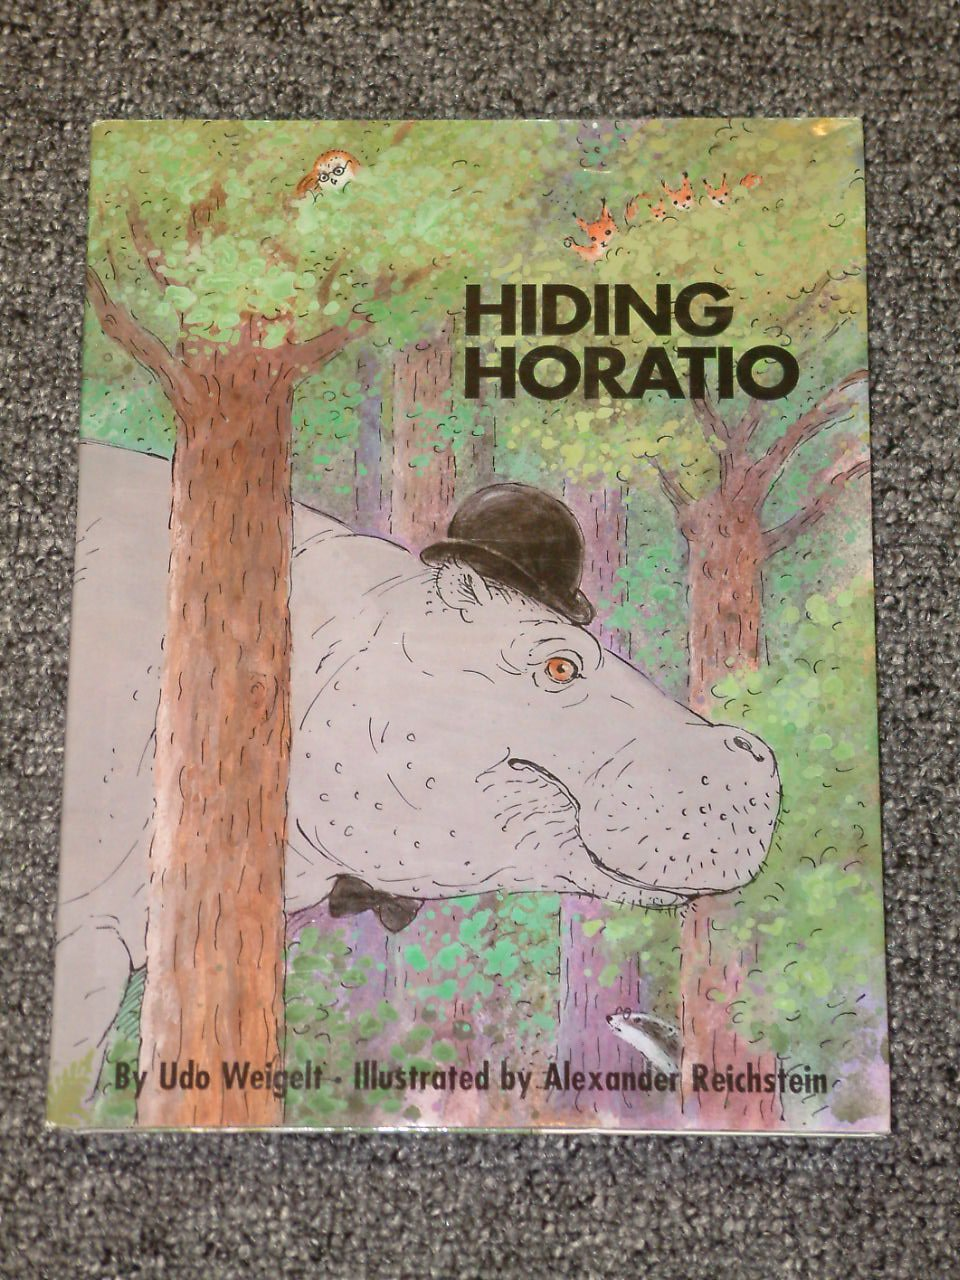 Hiding Horatio by Udo Weigelt HB DJ 1999 hippo